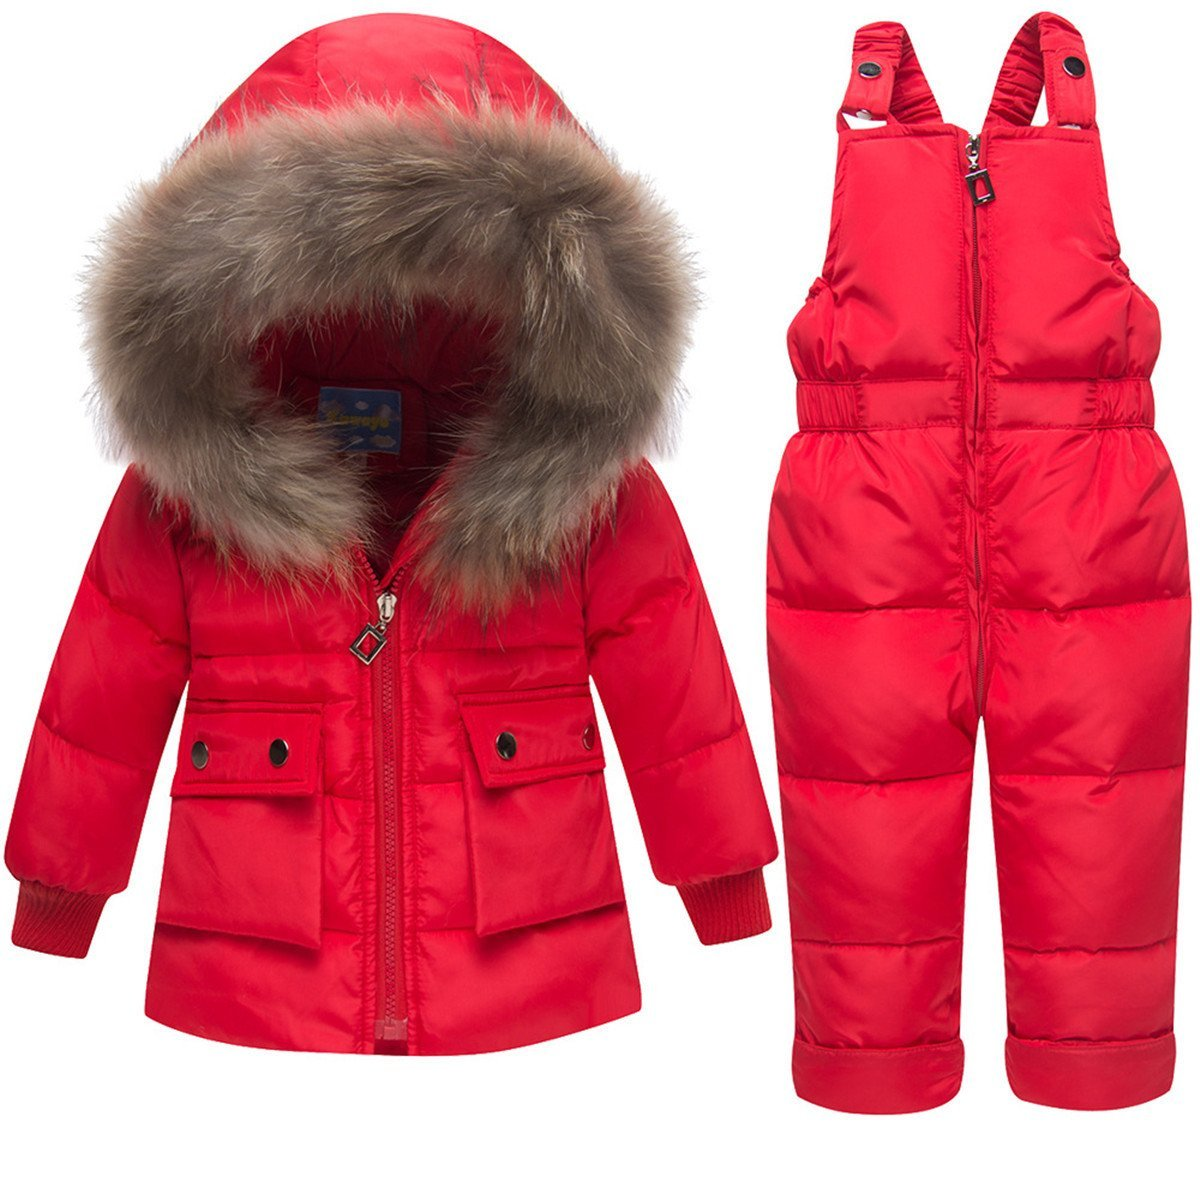 JELEUON Baby Girls and Boys Winter Warm Hooded Zipper Fur Trim Snowsuit Puffer Down Jacket with Snow Ski Bib Pants